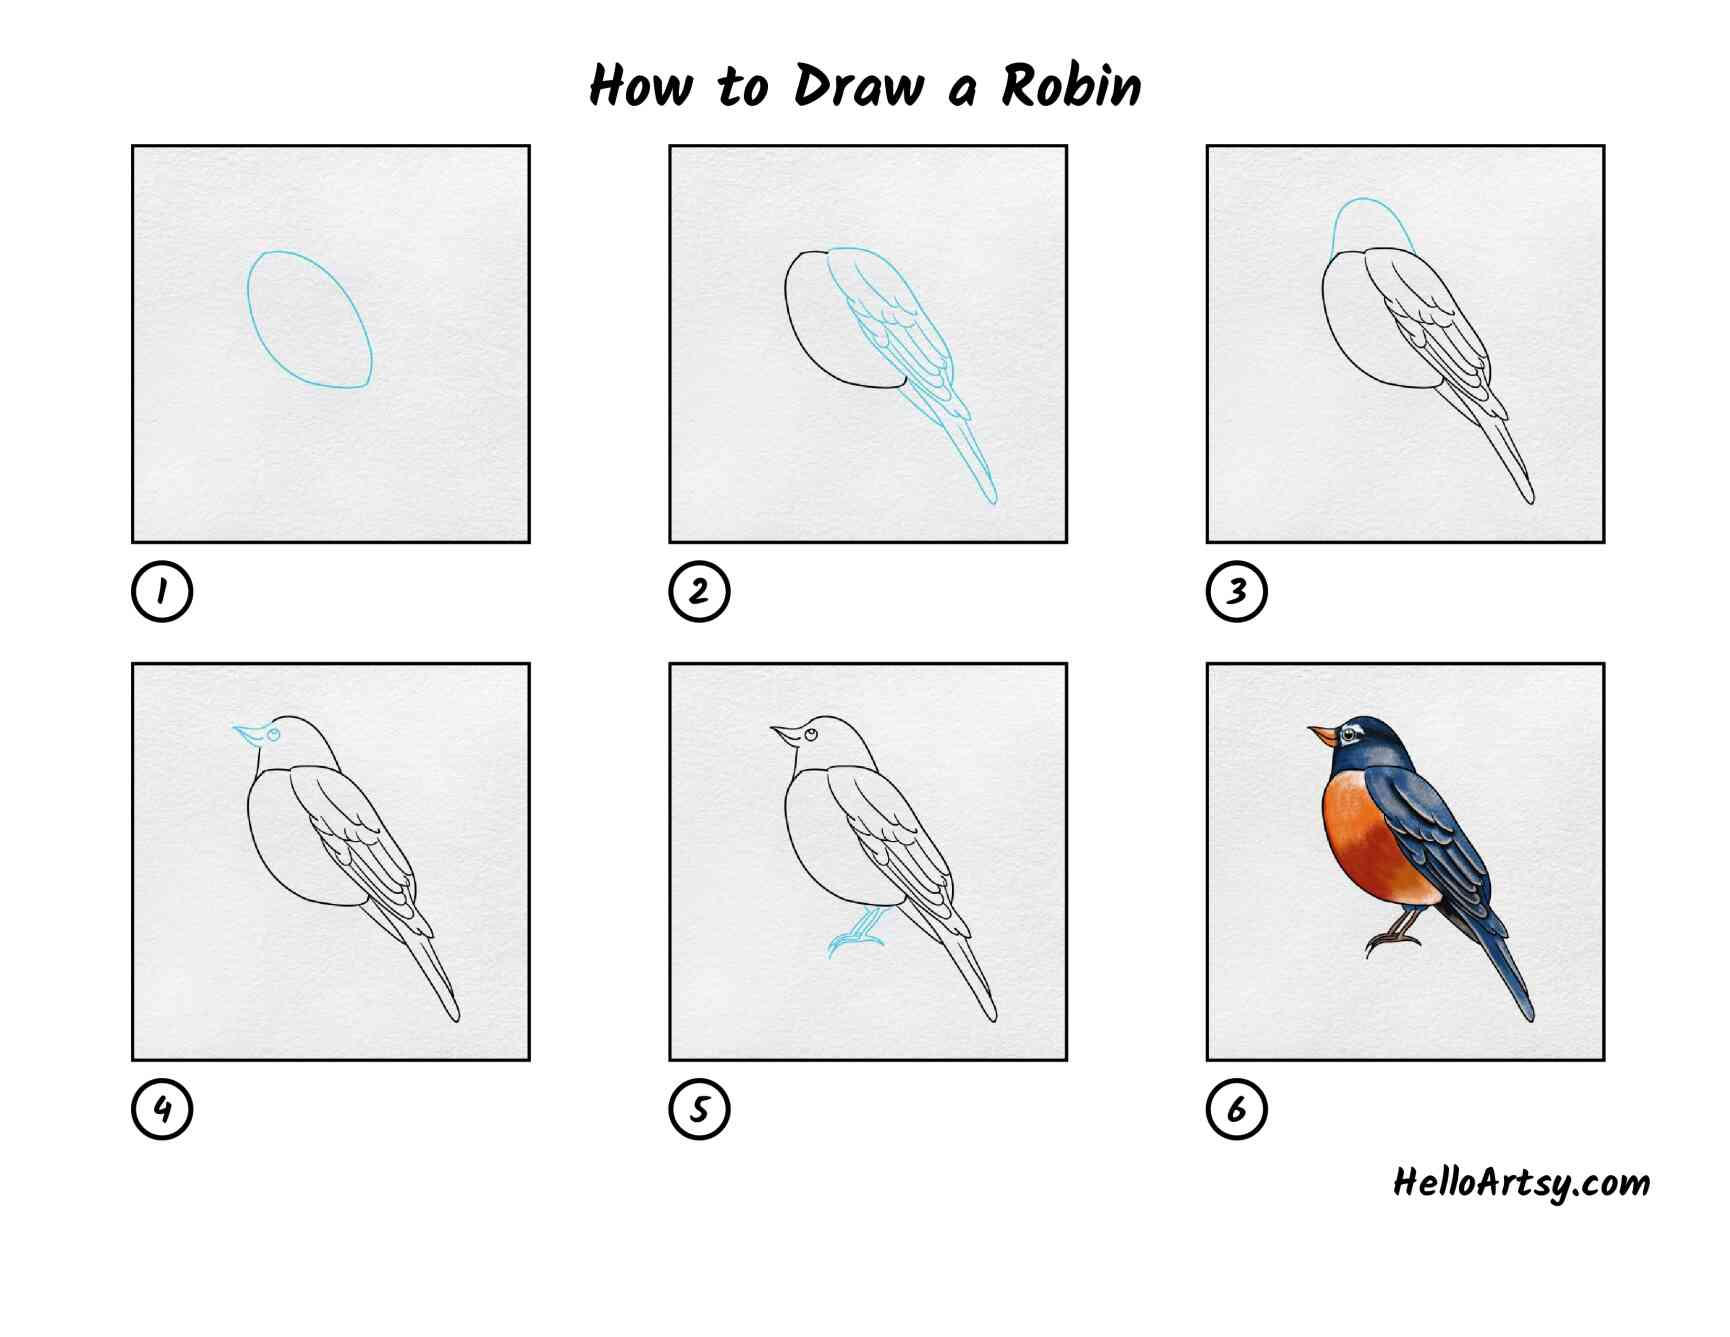 How To Draw A Robin: All Steps